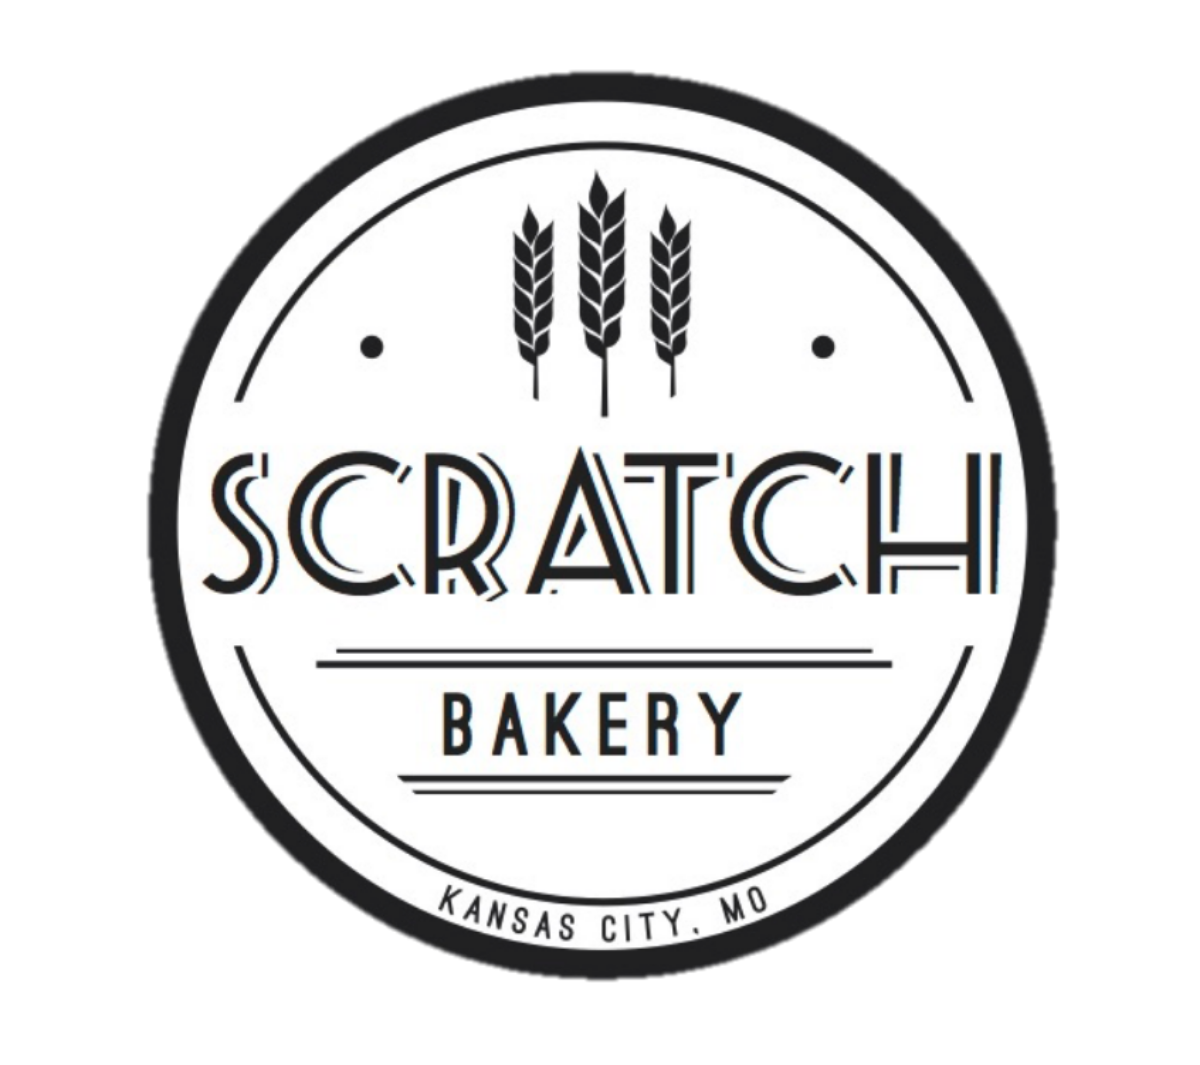 Scratch Bakery KC